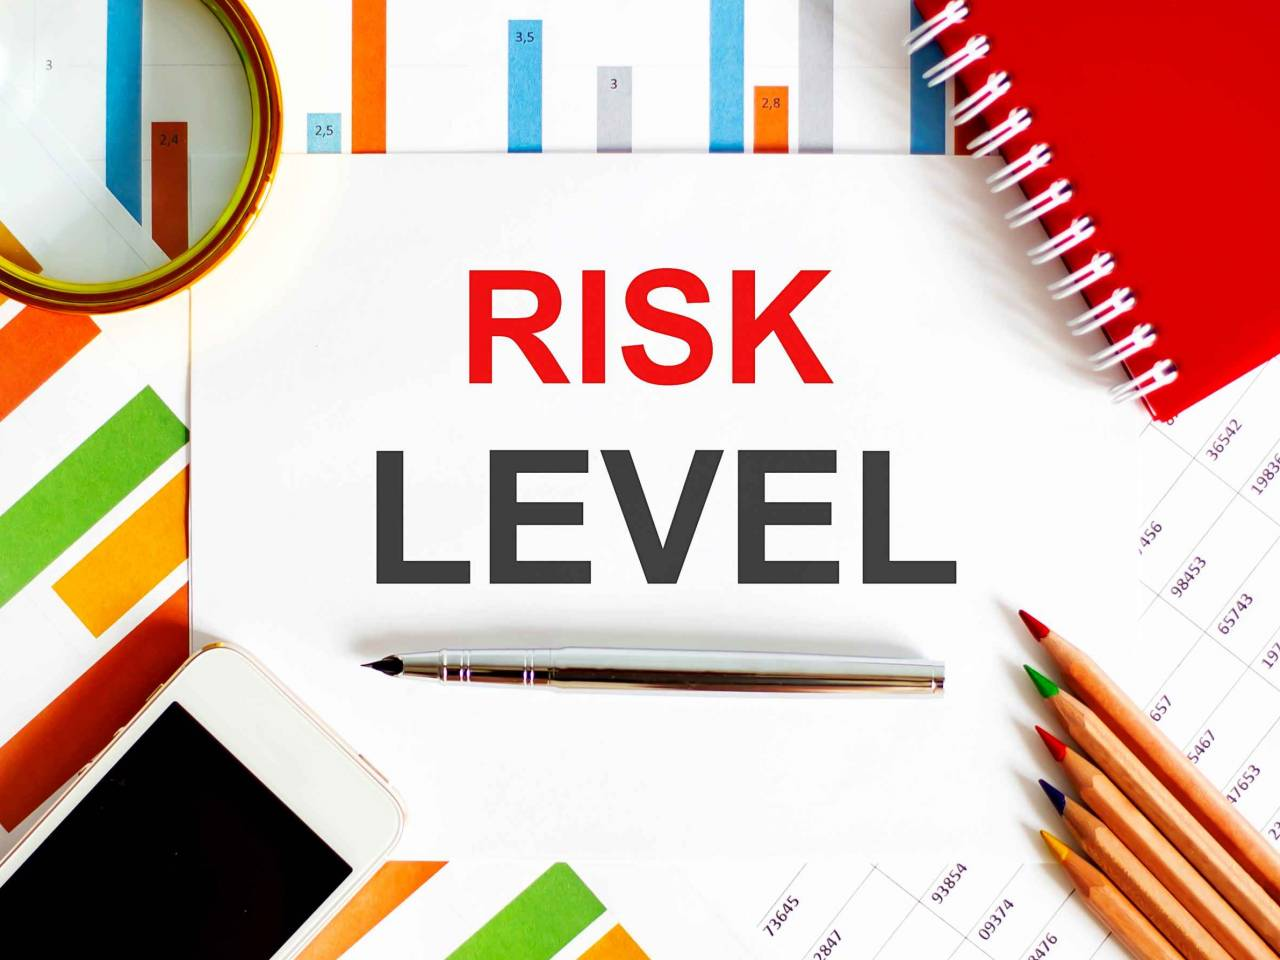 Text RISK LEVEL on notepad with office tools, pen on financial report